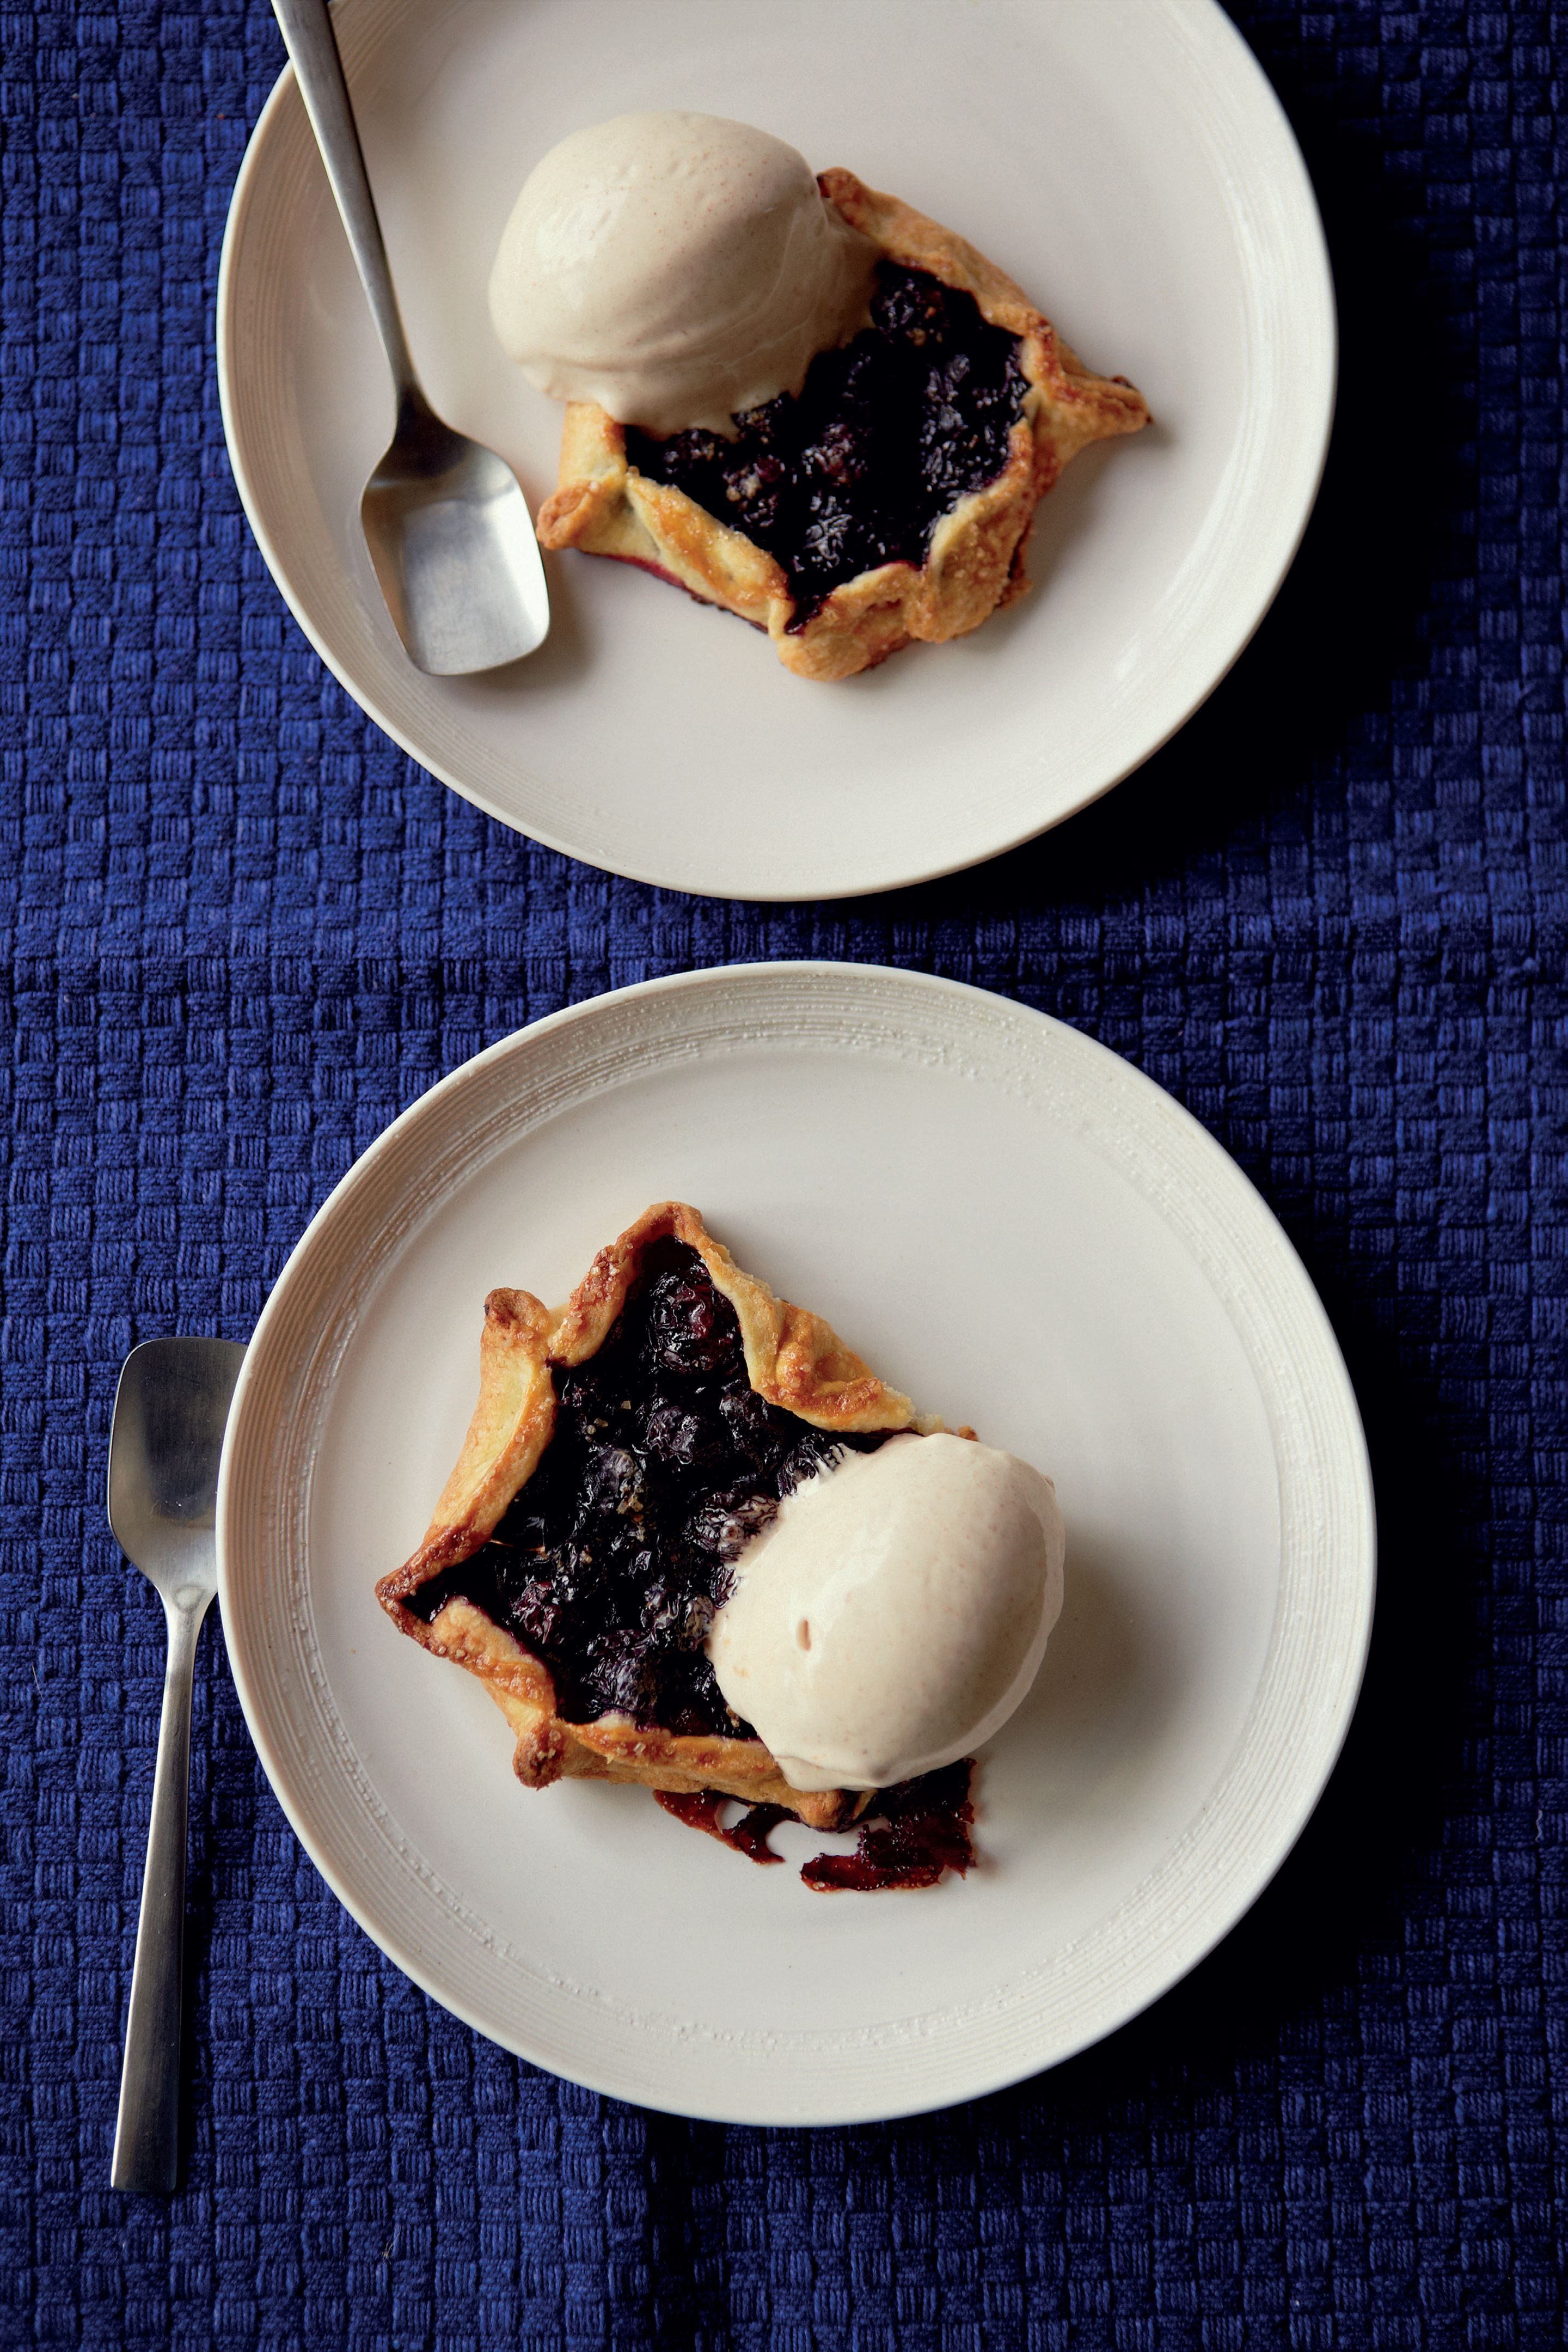 Fast chocolate bar ice cream with blueberry galettes